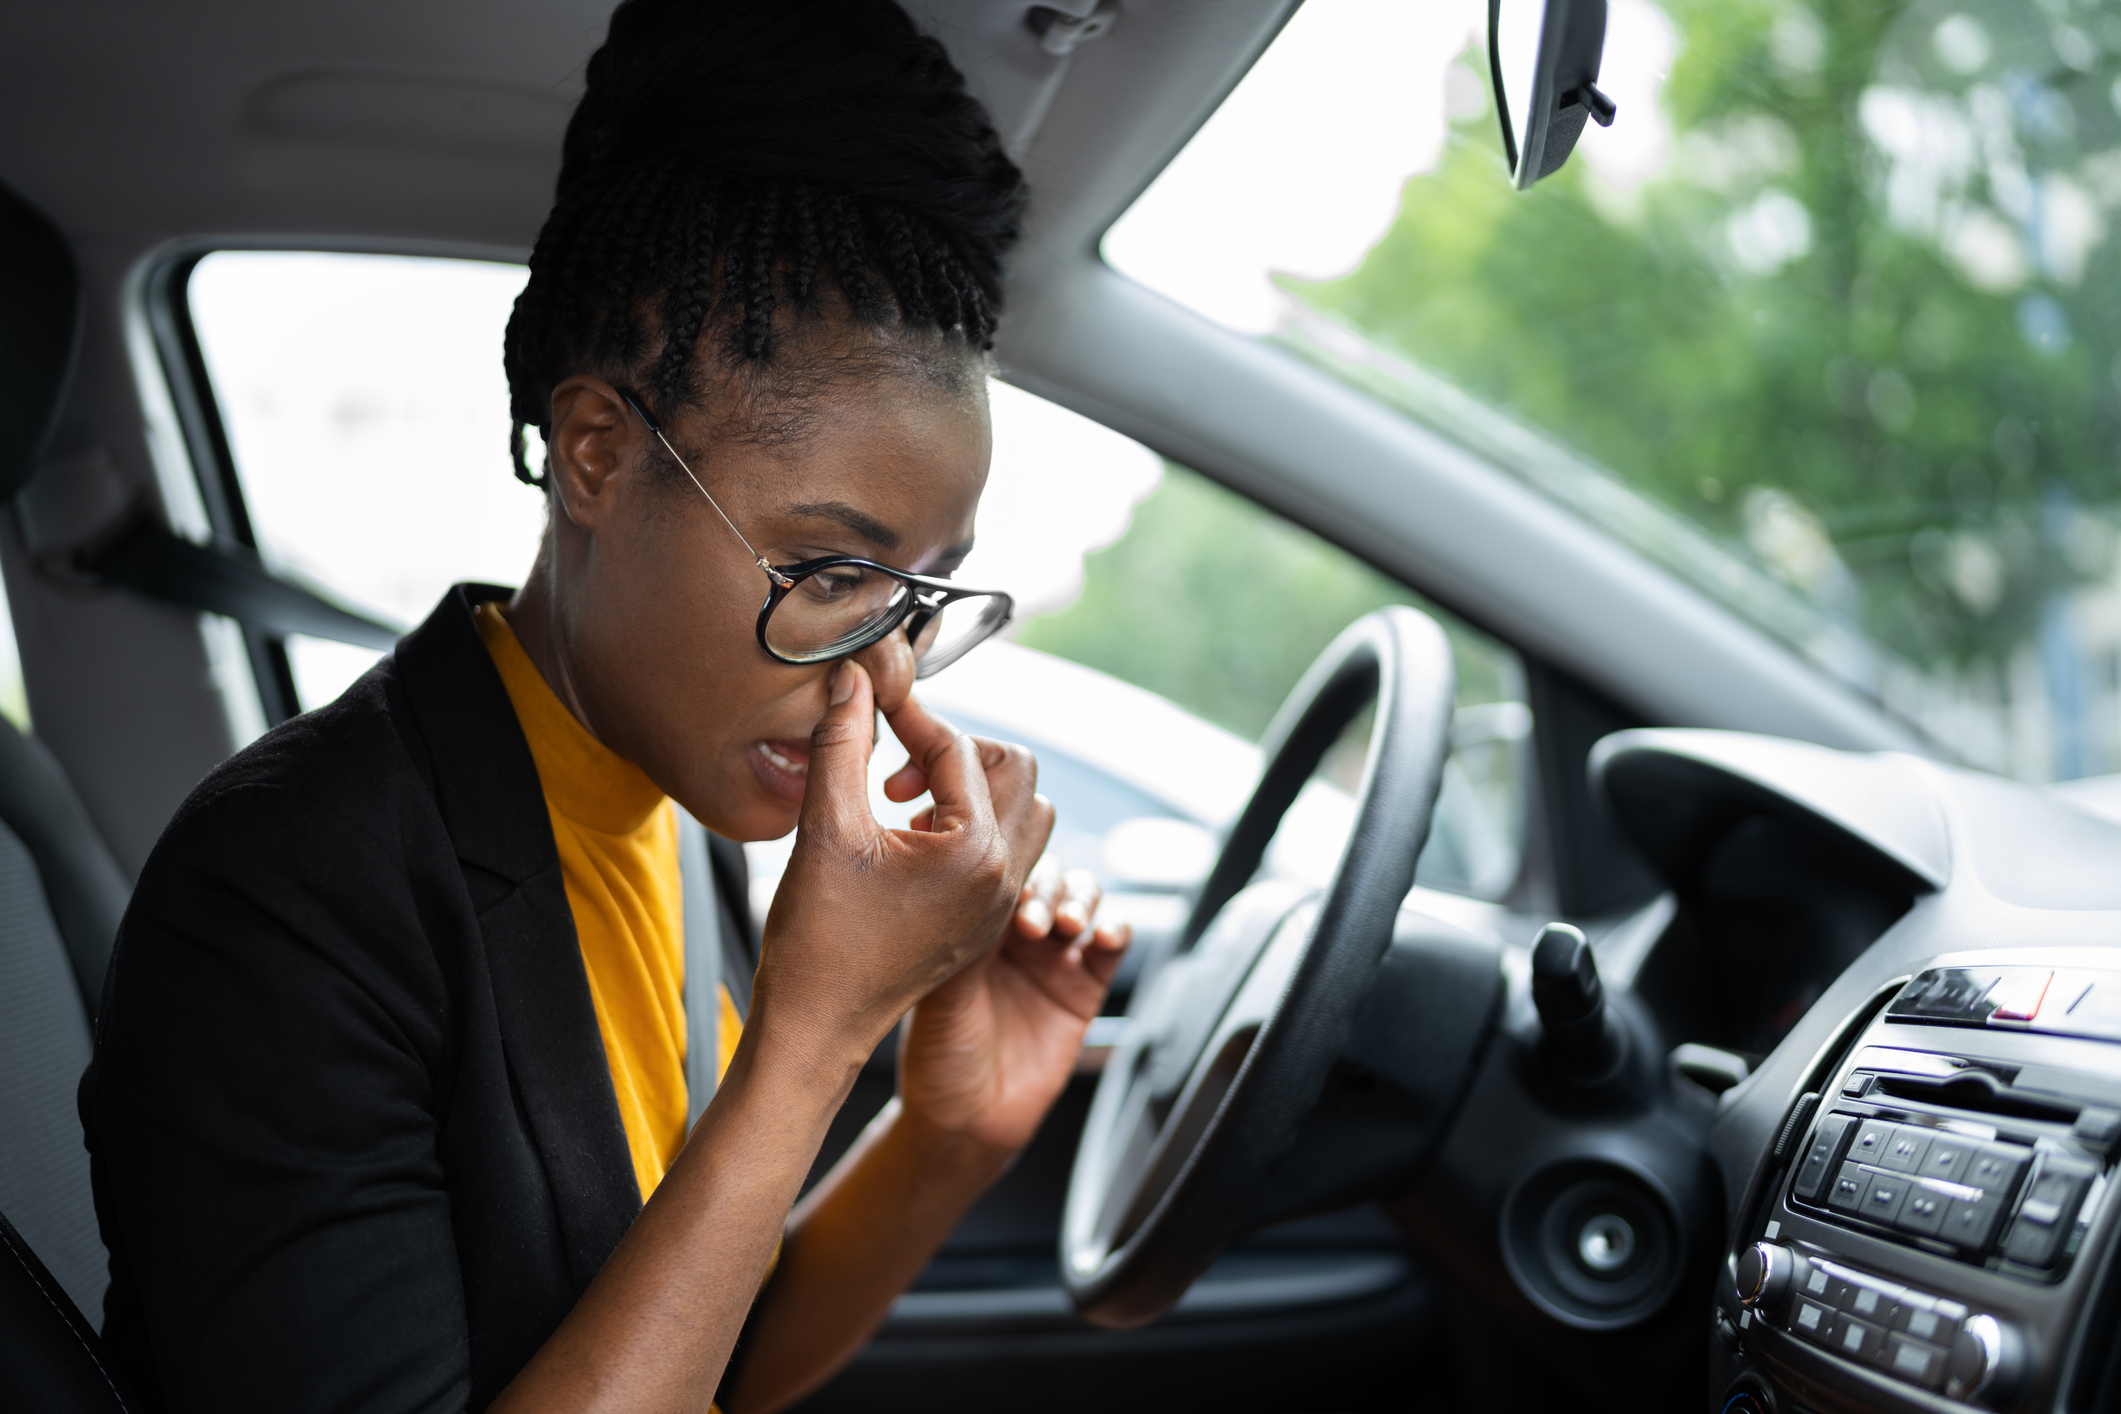 A burning smell can be a signal that a vehicle isn't shifting properly